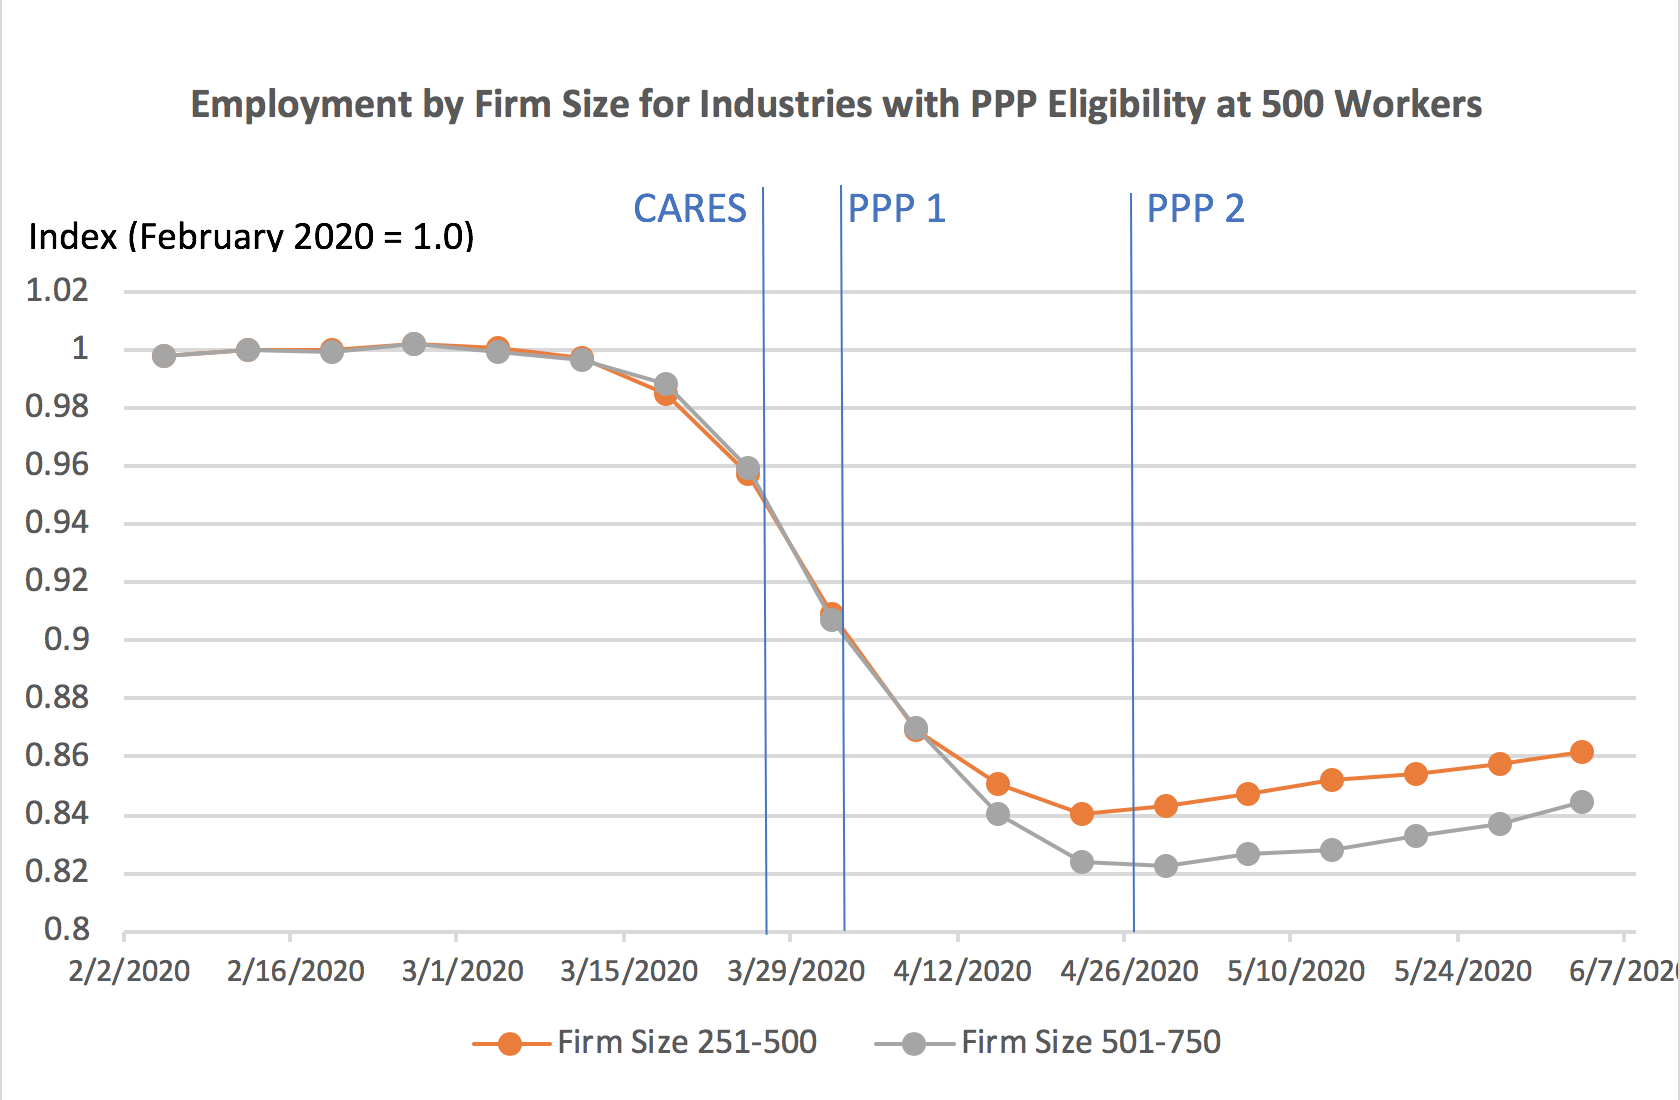 Employment by firm size for industries with PPP eligibility.